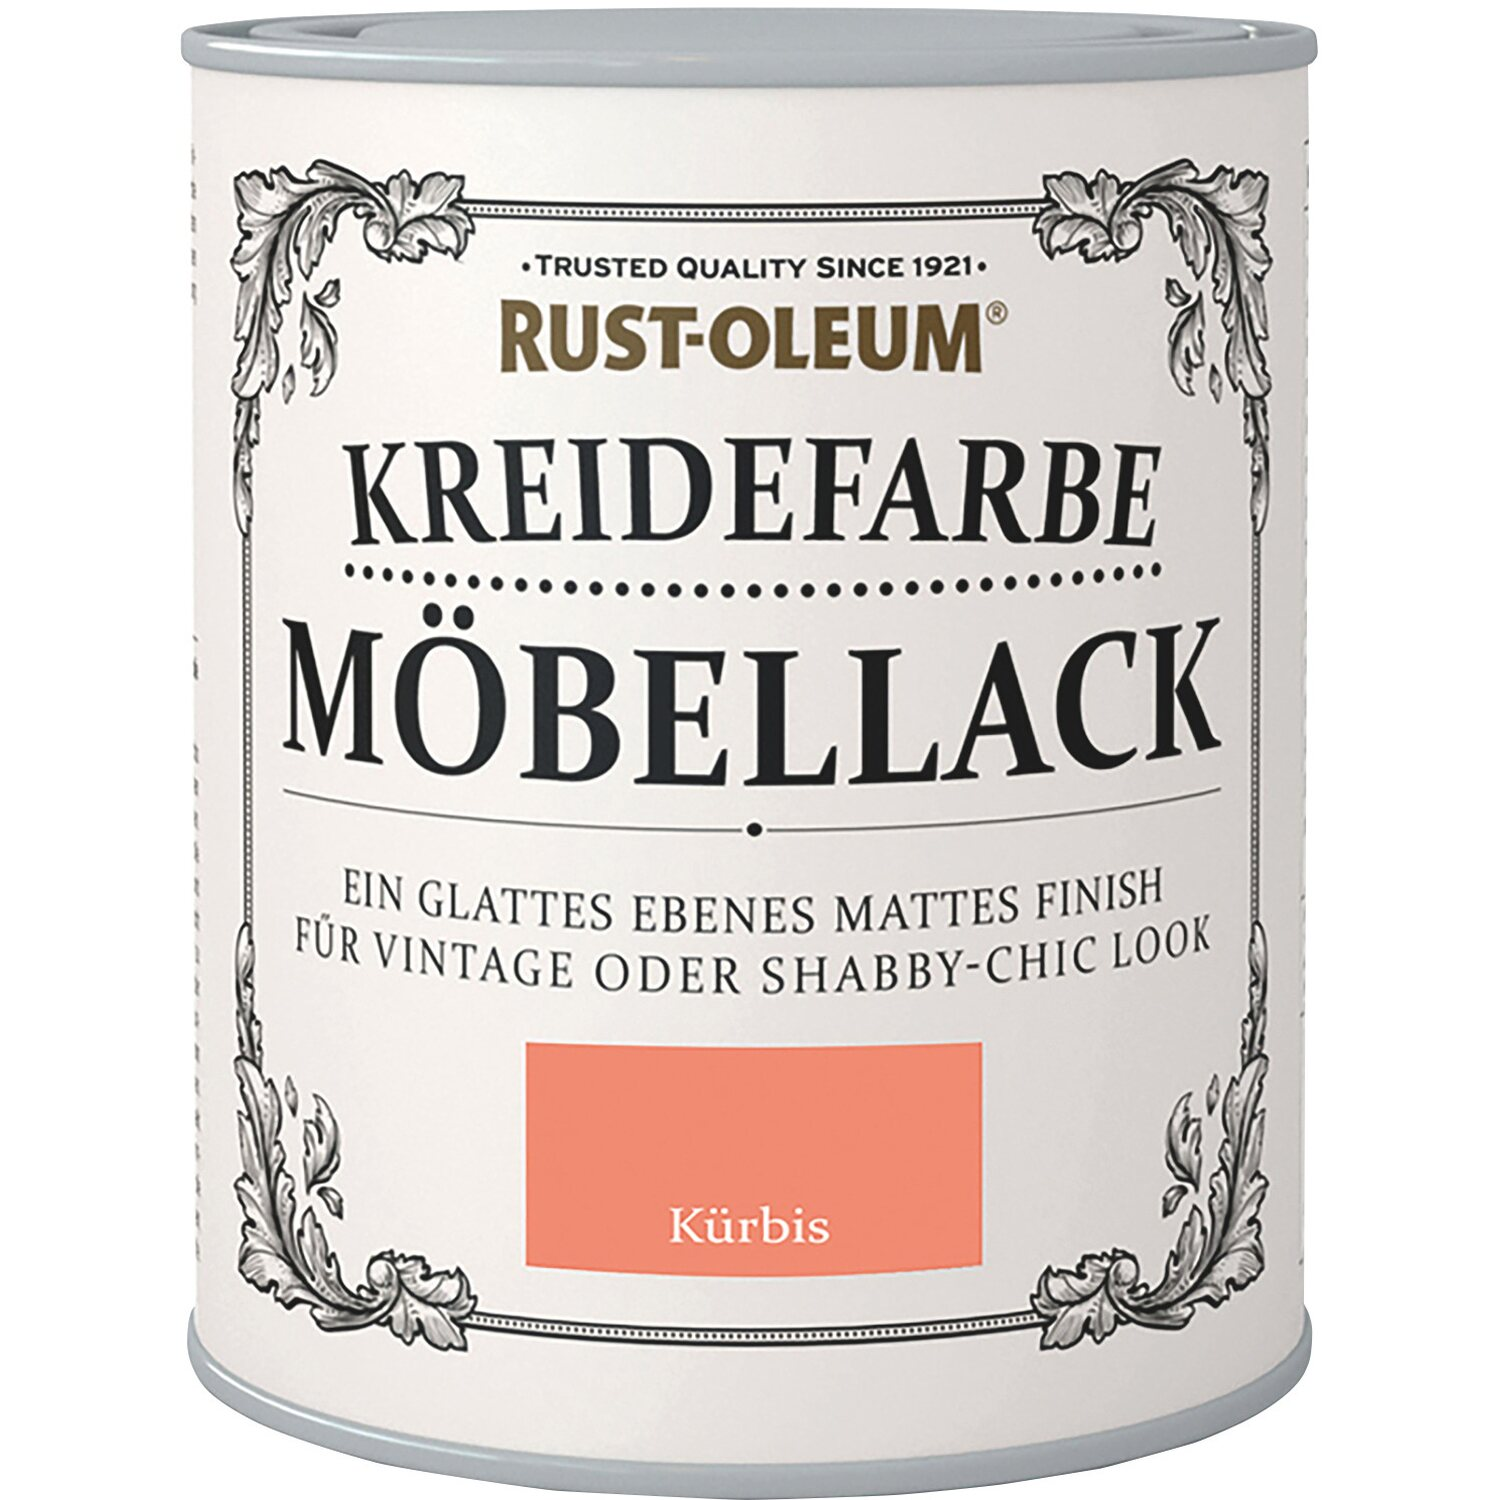 rust oleum kreidefarbe m bellack k rbis matt 750 ml kaufen bei obi. Black Bedroom Furniture Sets. Home Design Ideas